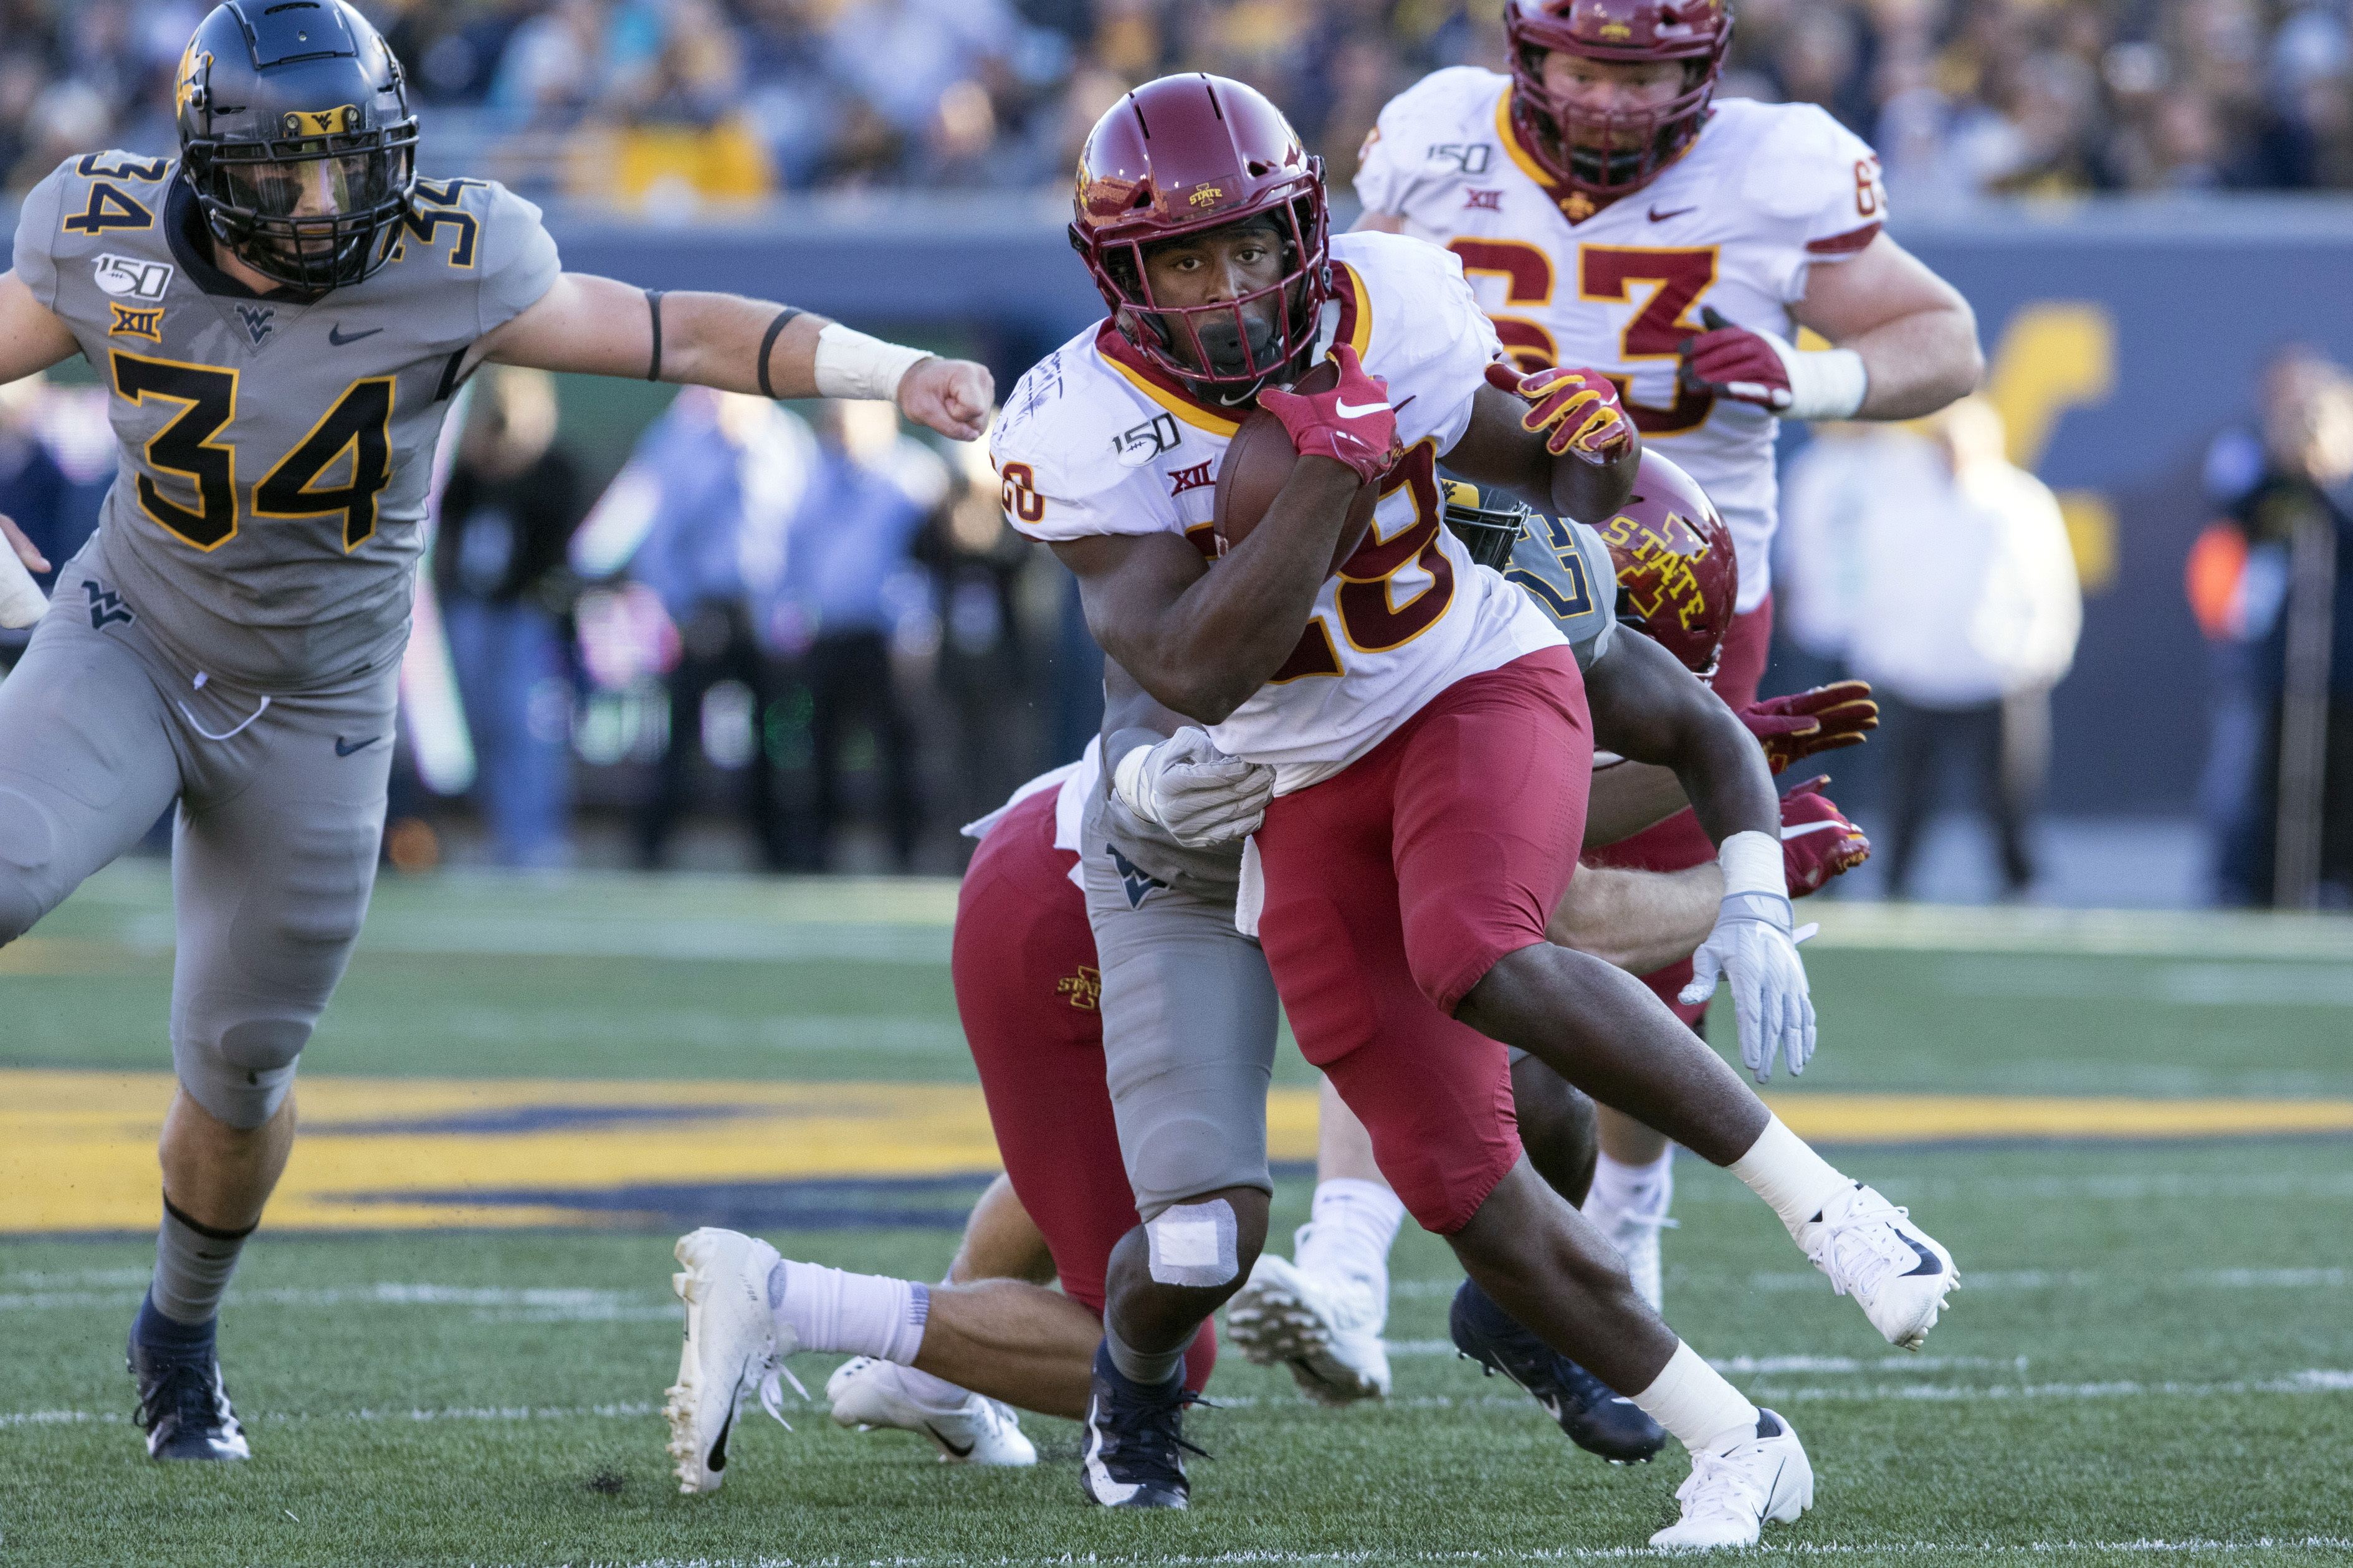 Freshman Breece Hall emerges at RB for Iowa State